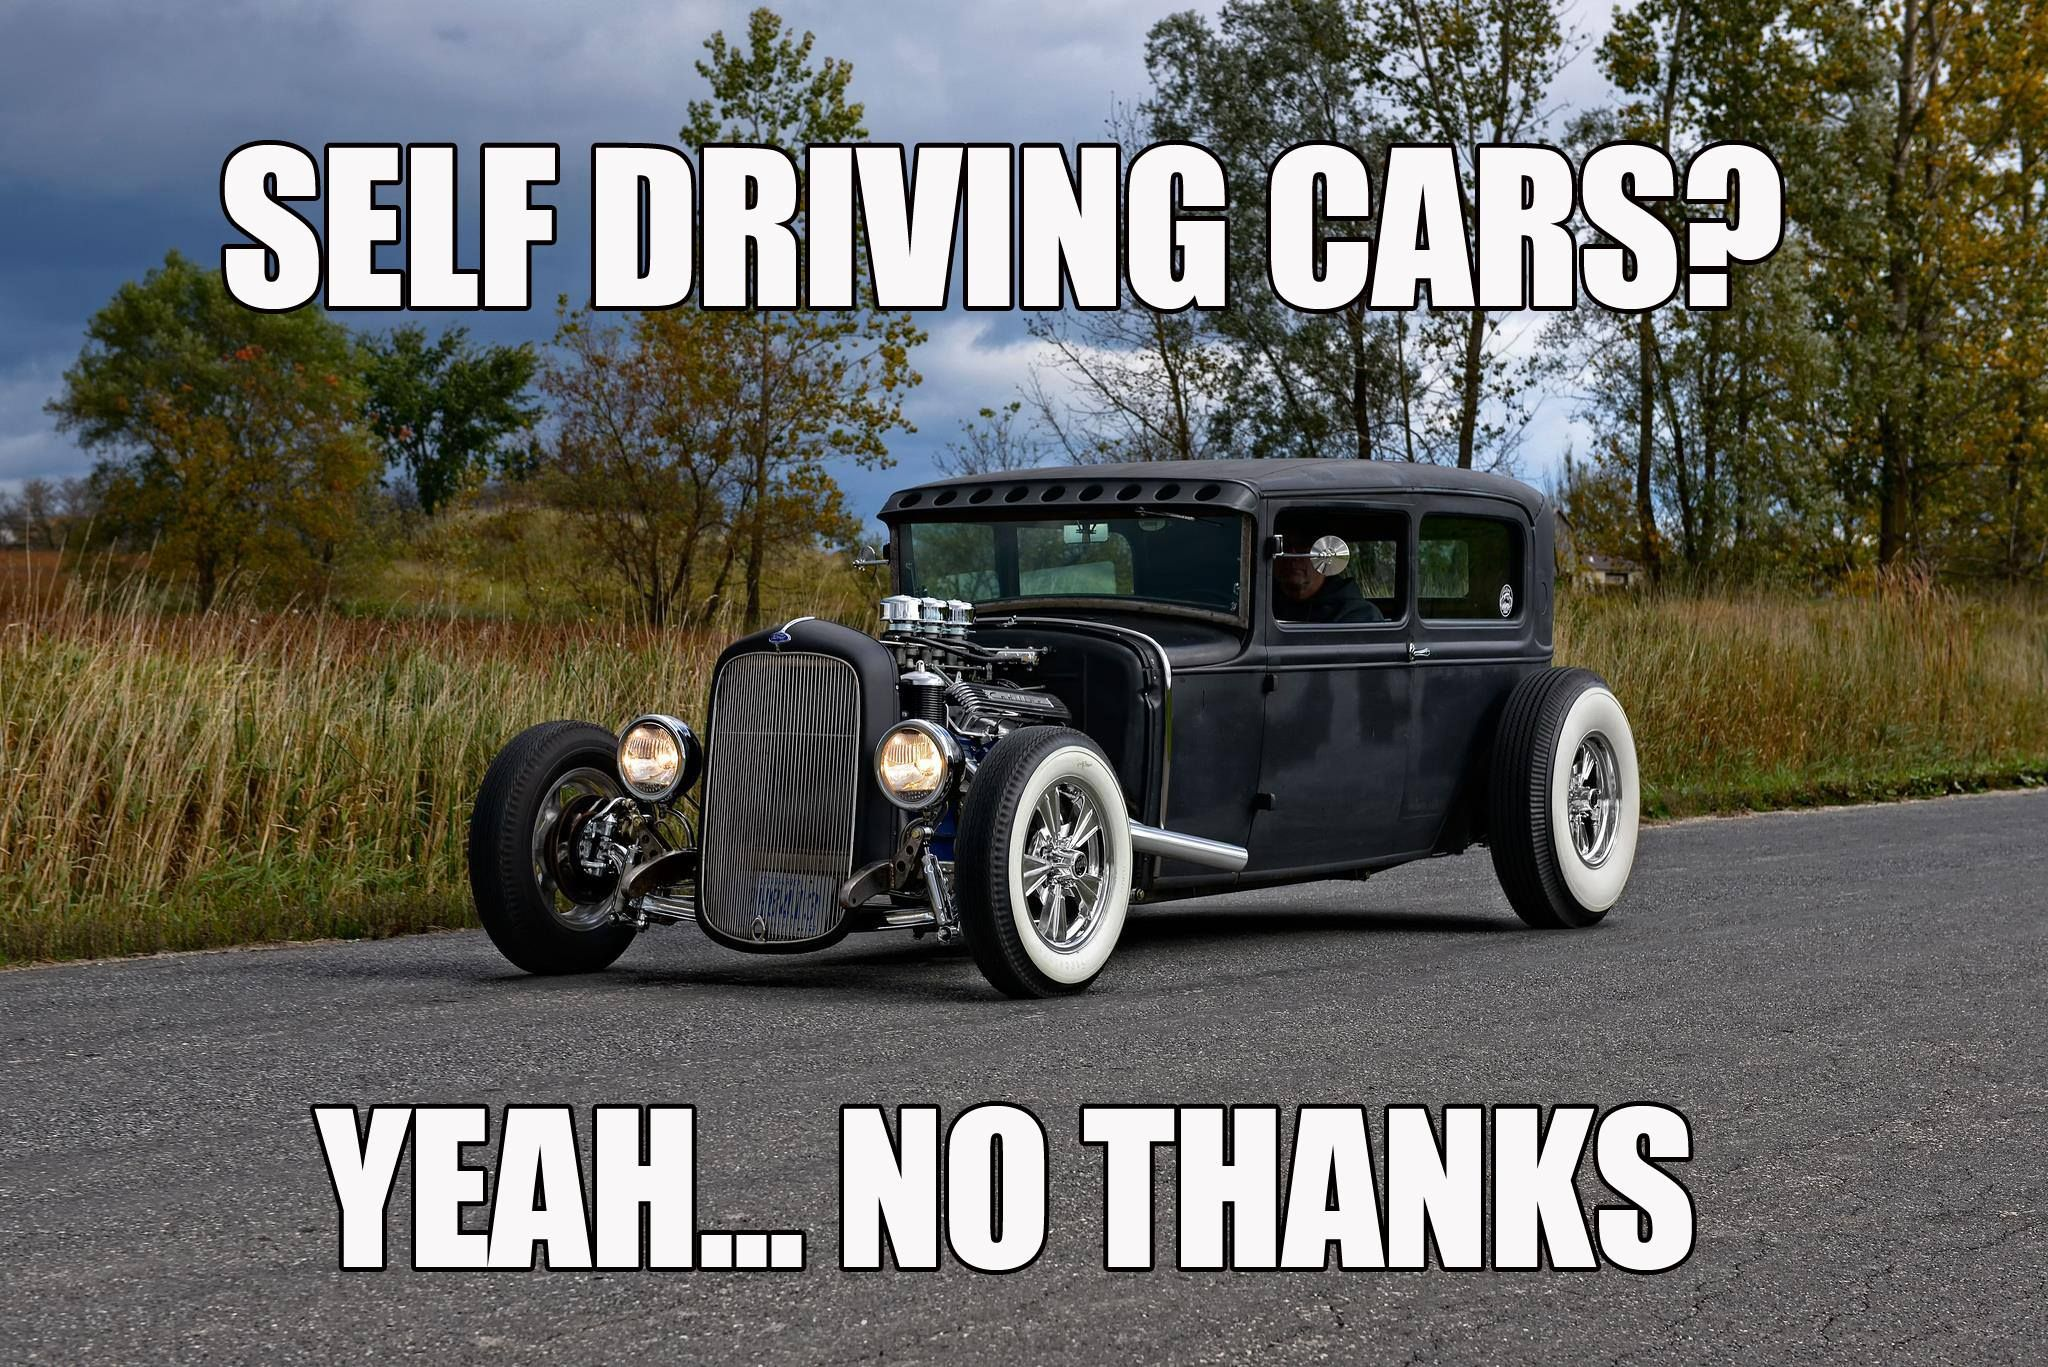 Funny No Thank You Meme : Self driving cars yeah no thanks gearhead meme